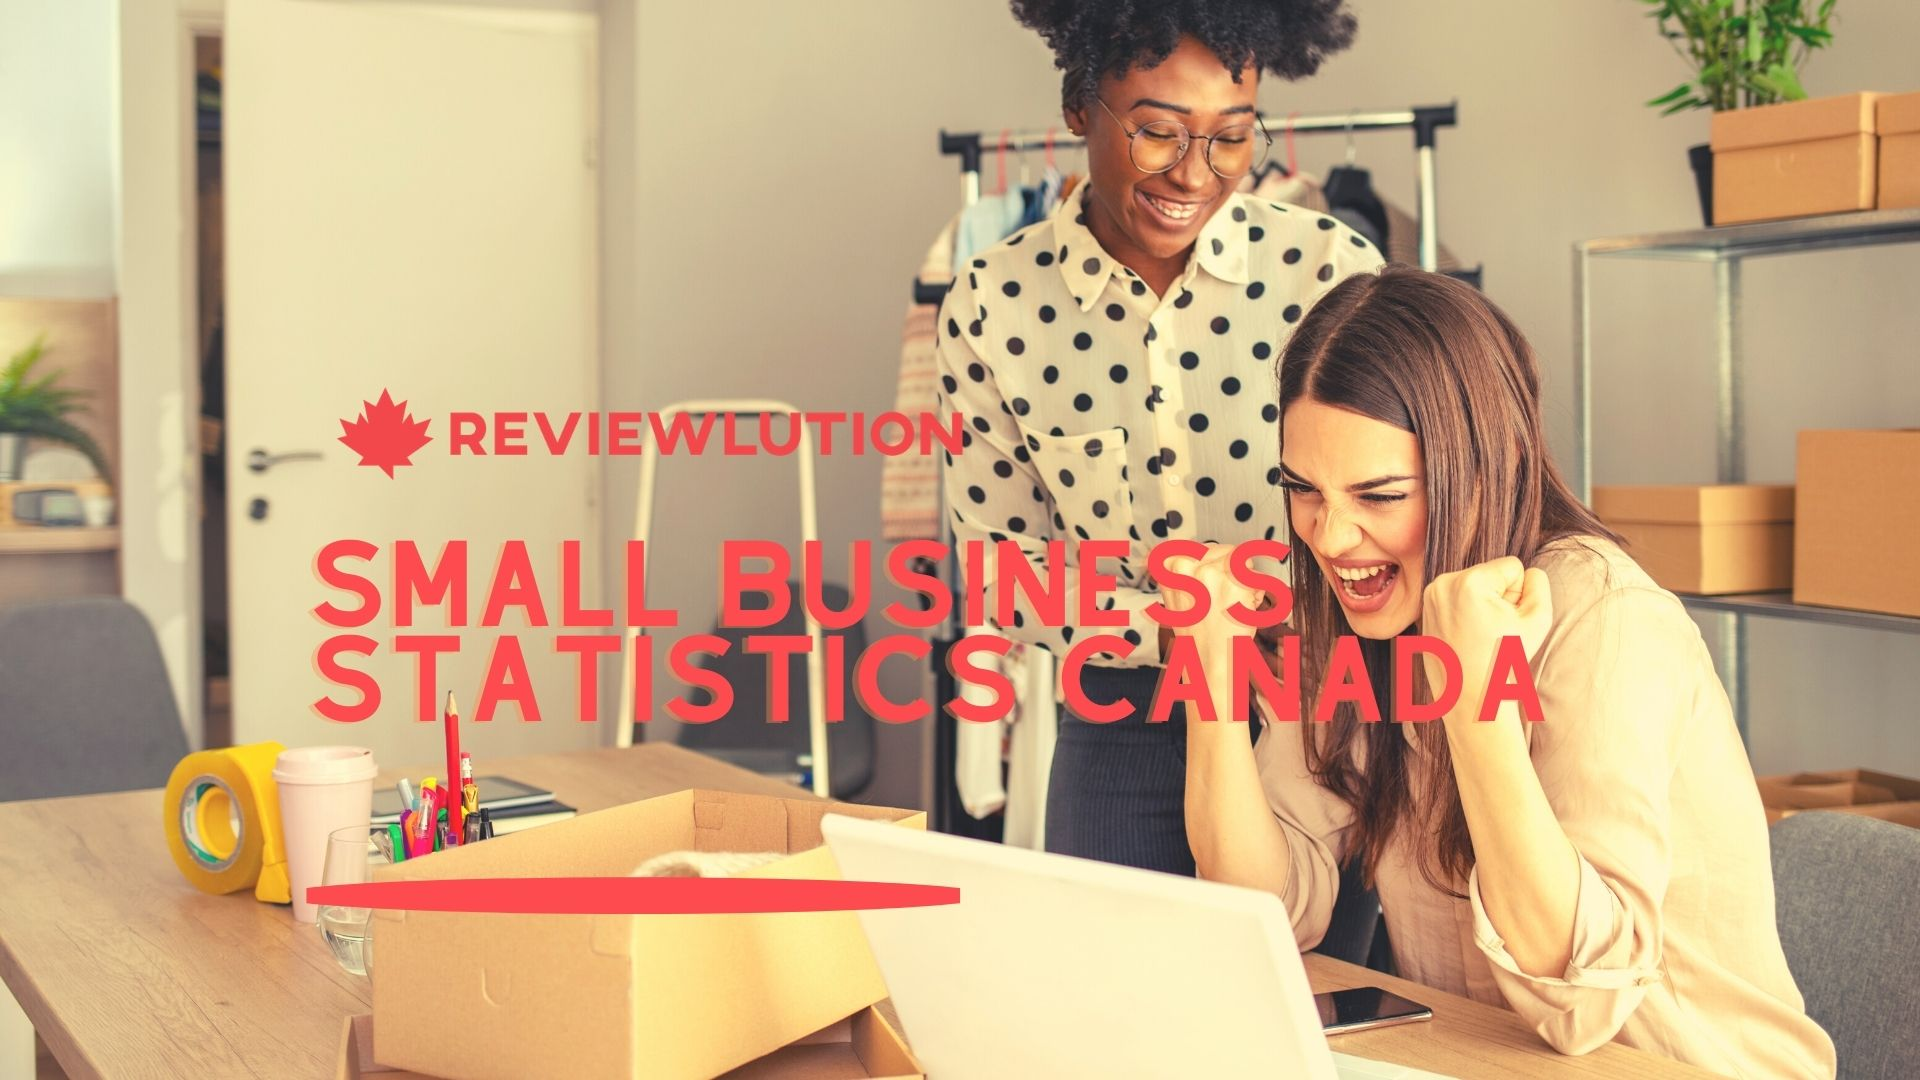 17+ Inspiring Small Business Statistics for Canada in 2021